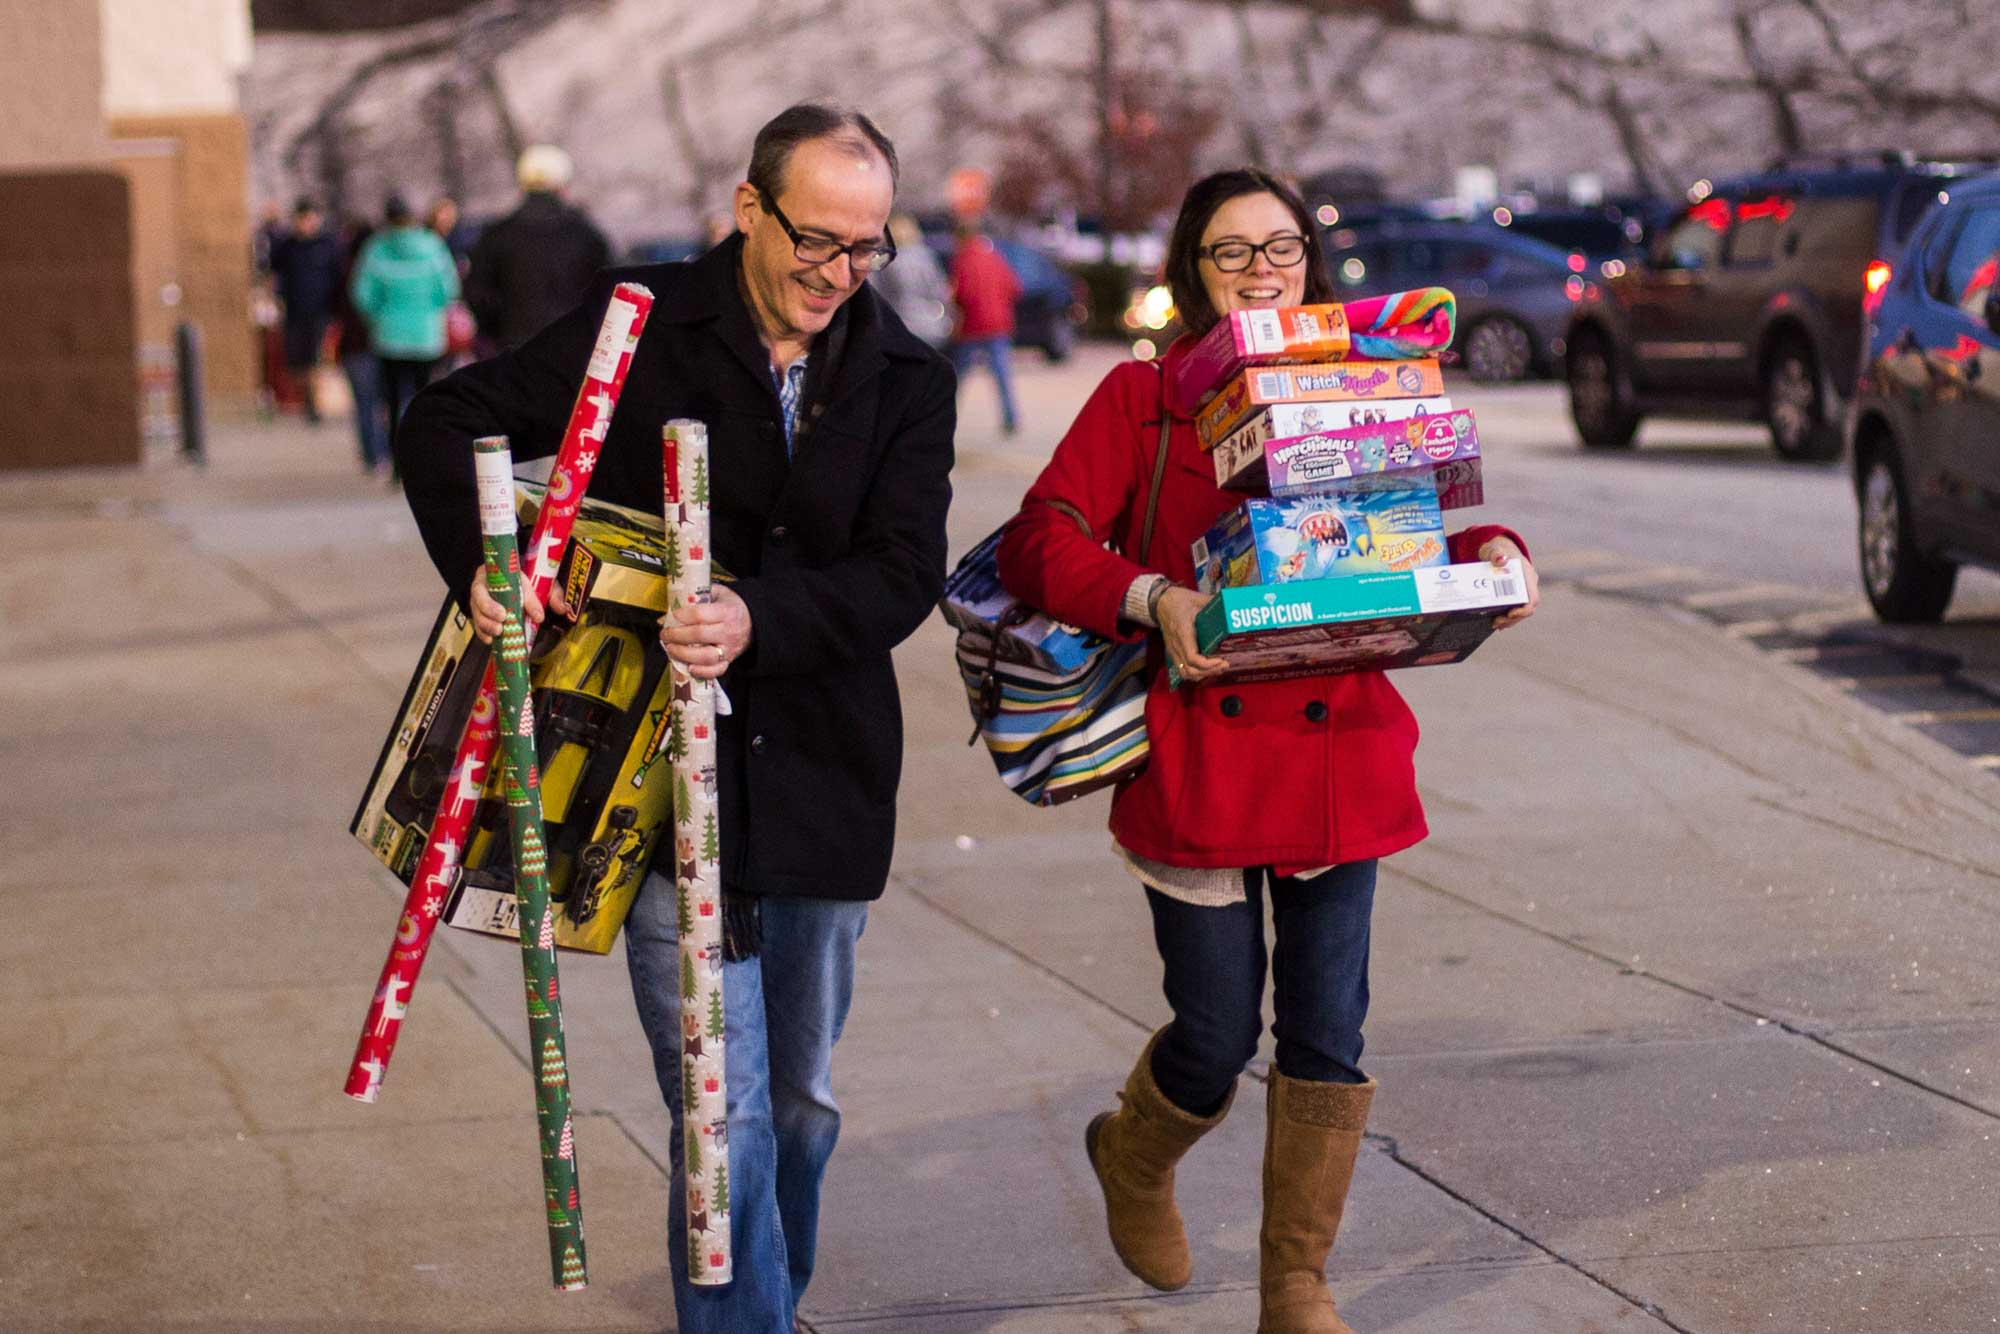 Most consumers expect to return gifts this holiday season